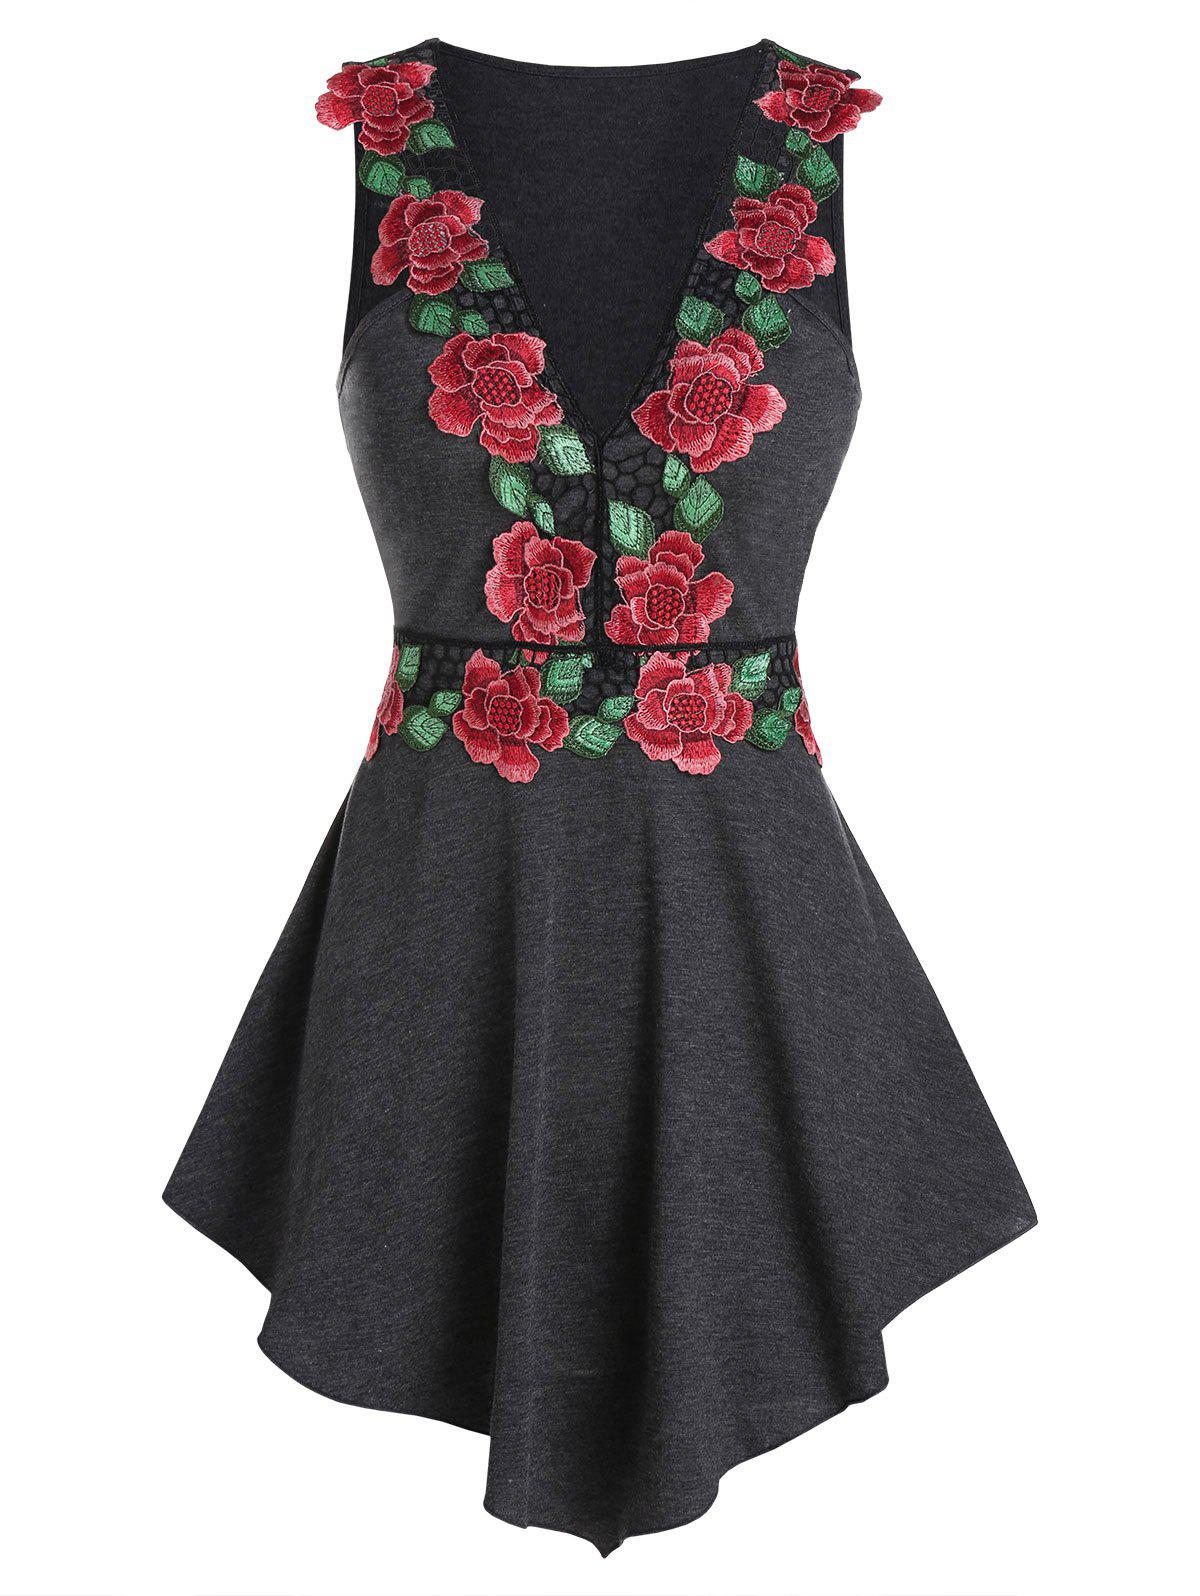 Flower Embroidered Pointed Hem Tank Top - CARBON GRAY M